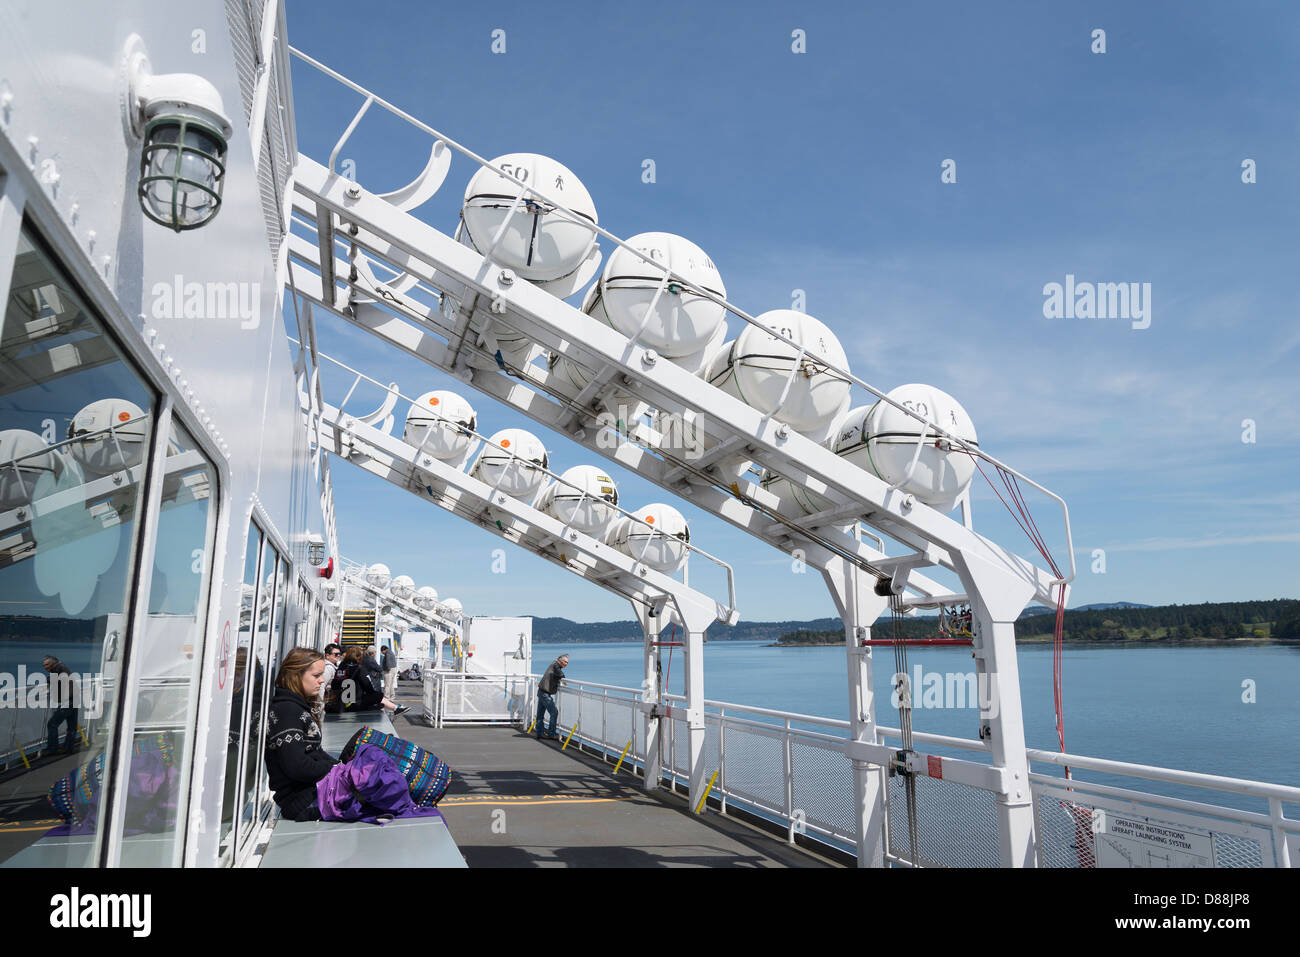 Life raft array, BC Ferry, British Columbia, Canada - Stock Image